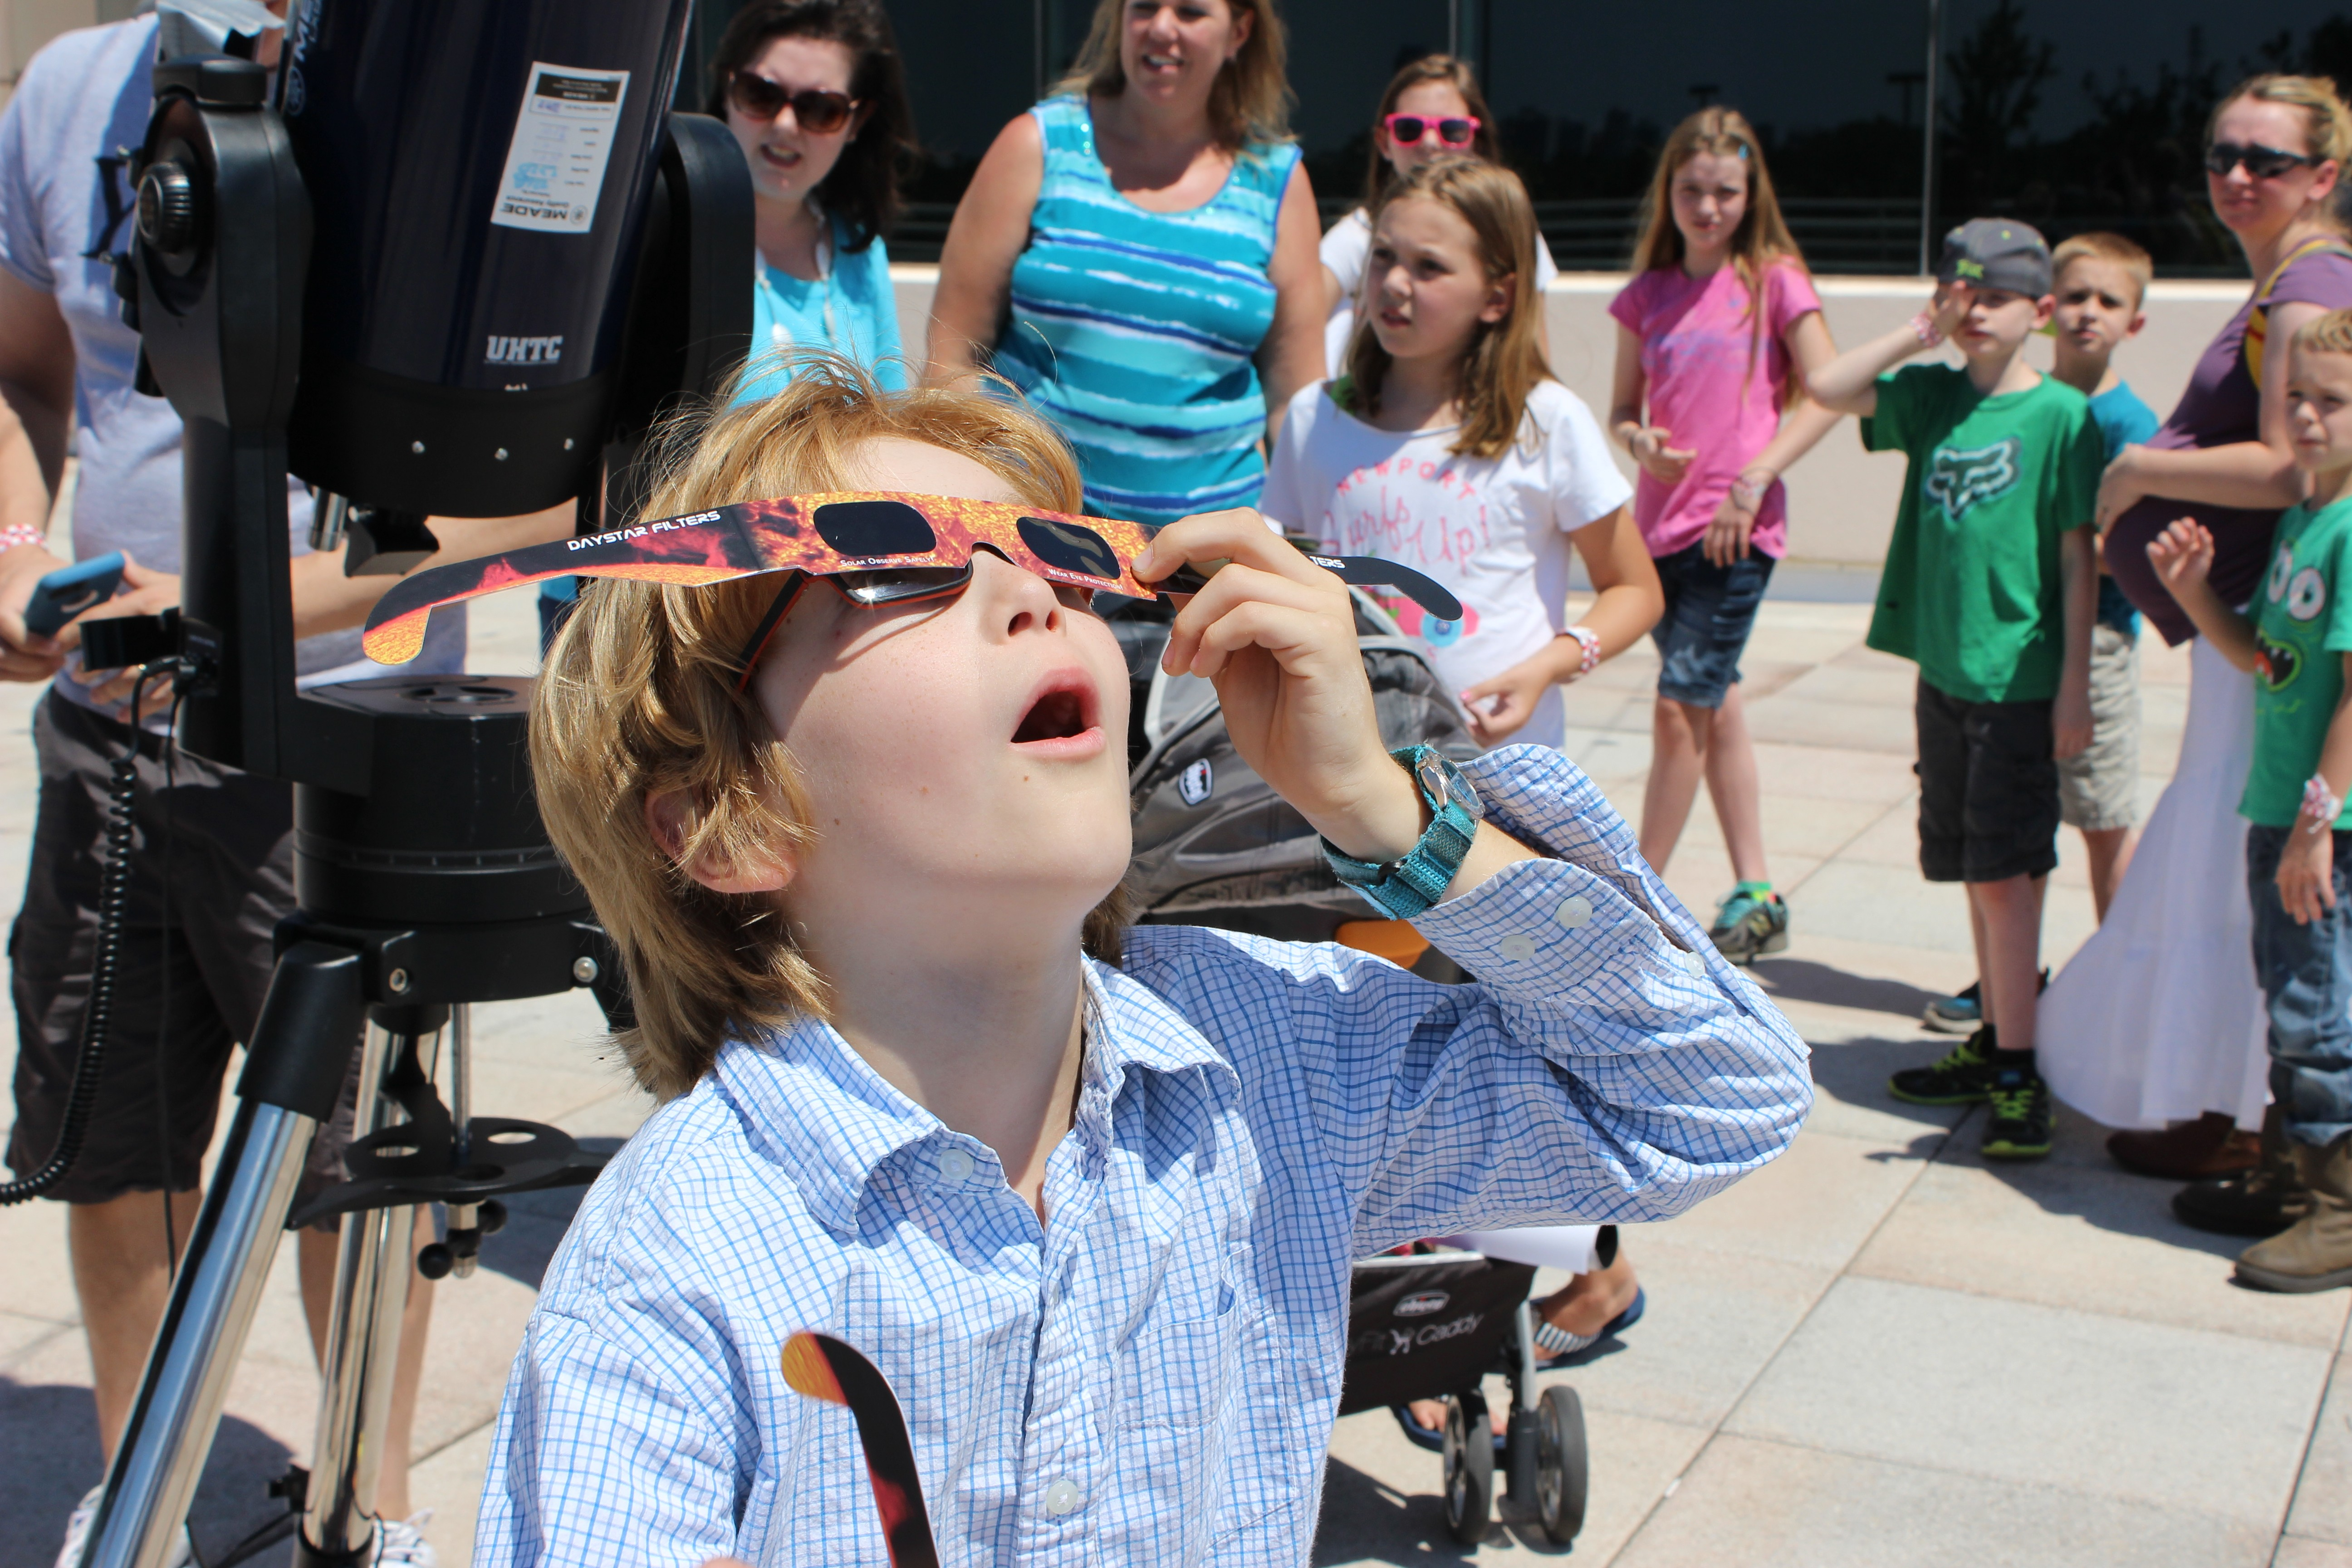 watch the solar eclipse at the orlando science center on aug 21